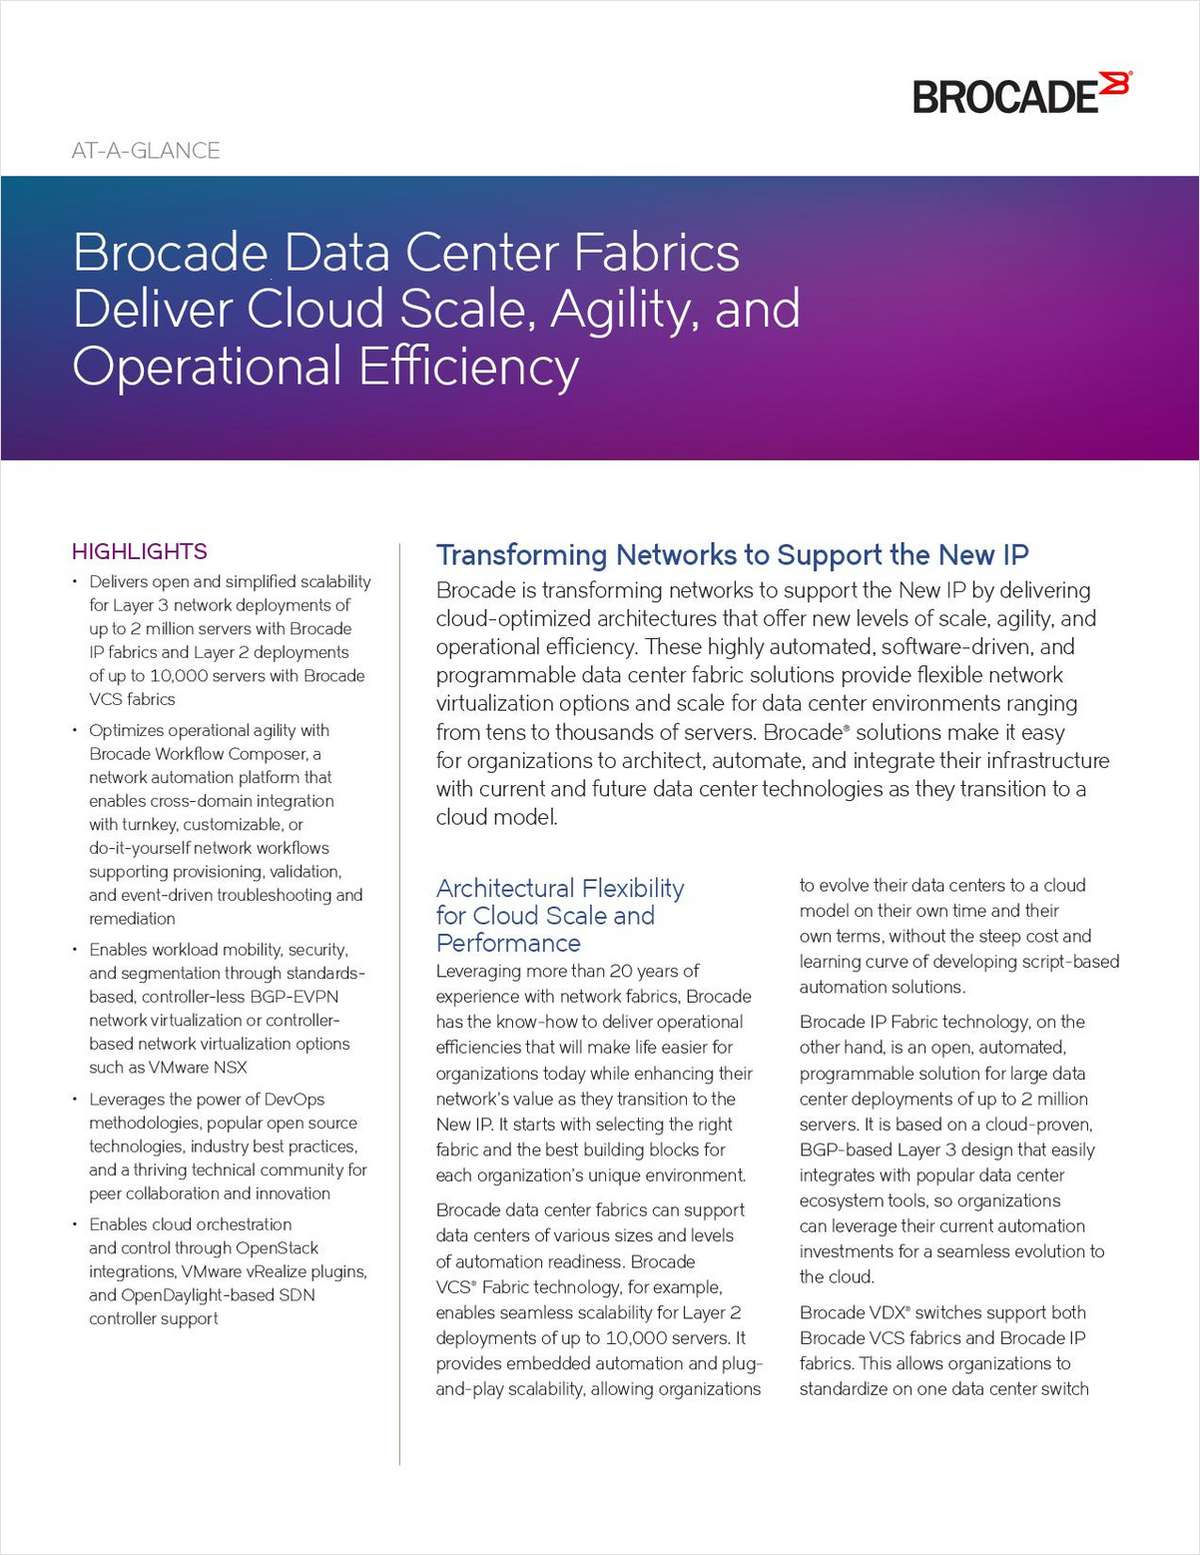 Brocade Data Center Fabrics Deliver Cloud Scale, Agility, and Operational Efficiency